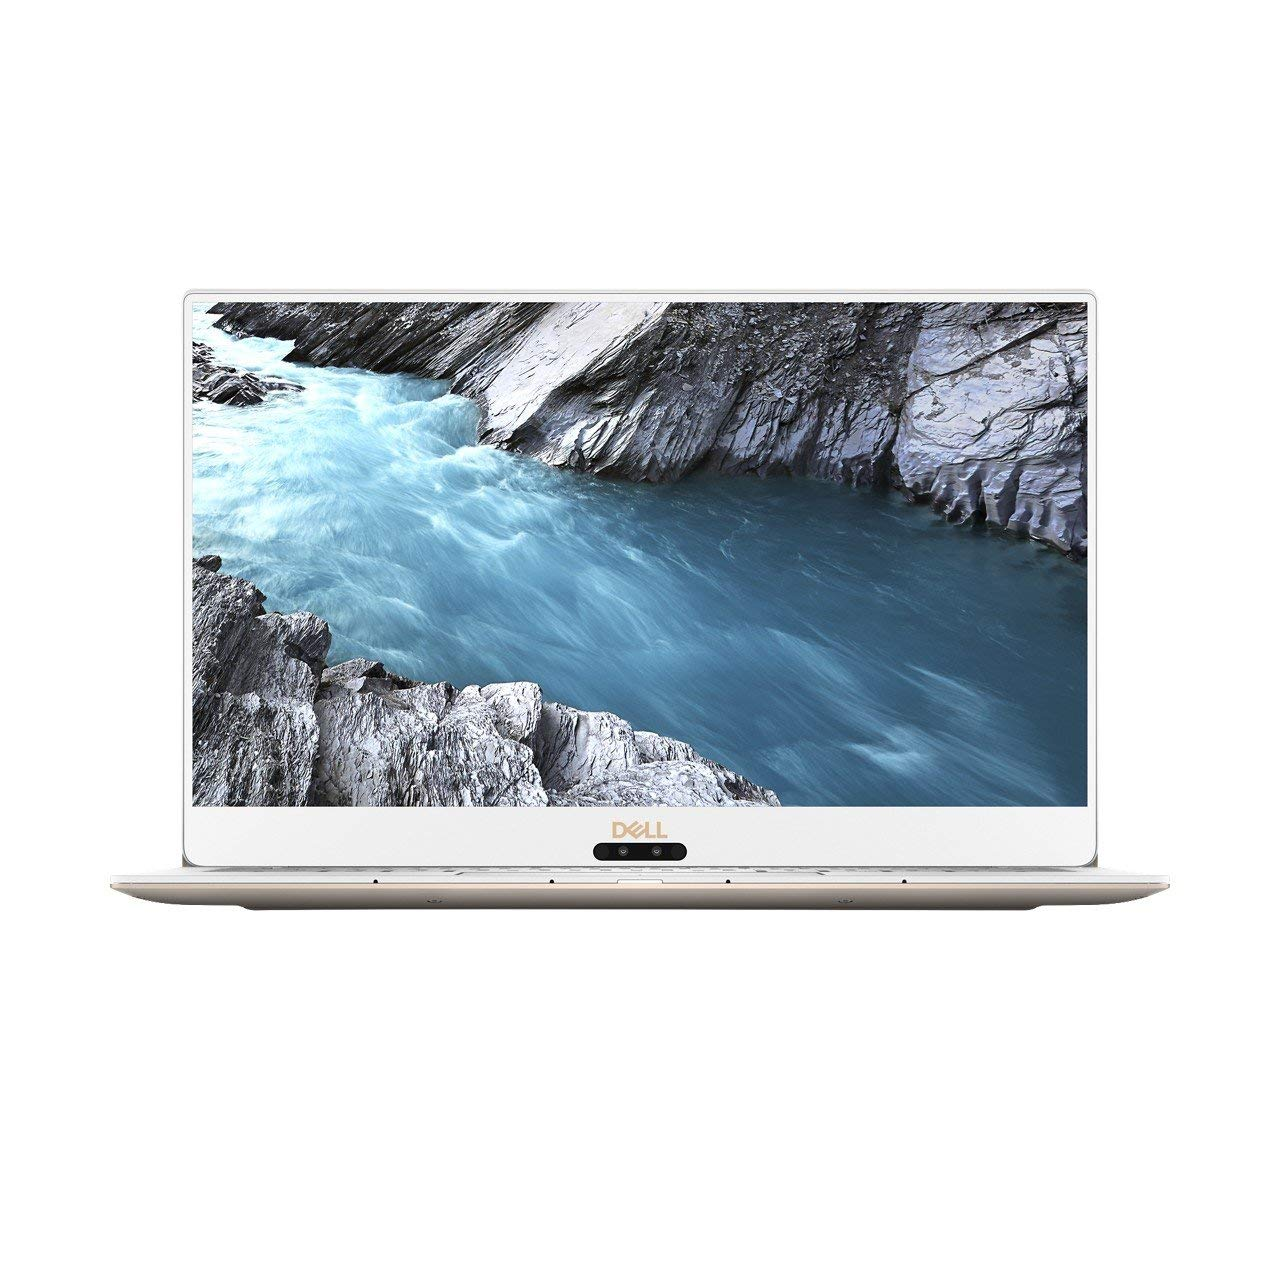 "Dell XPS 13 9370 13.3"" FHD"